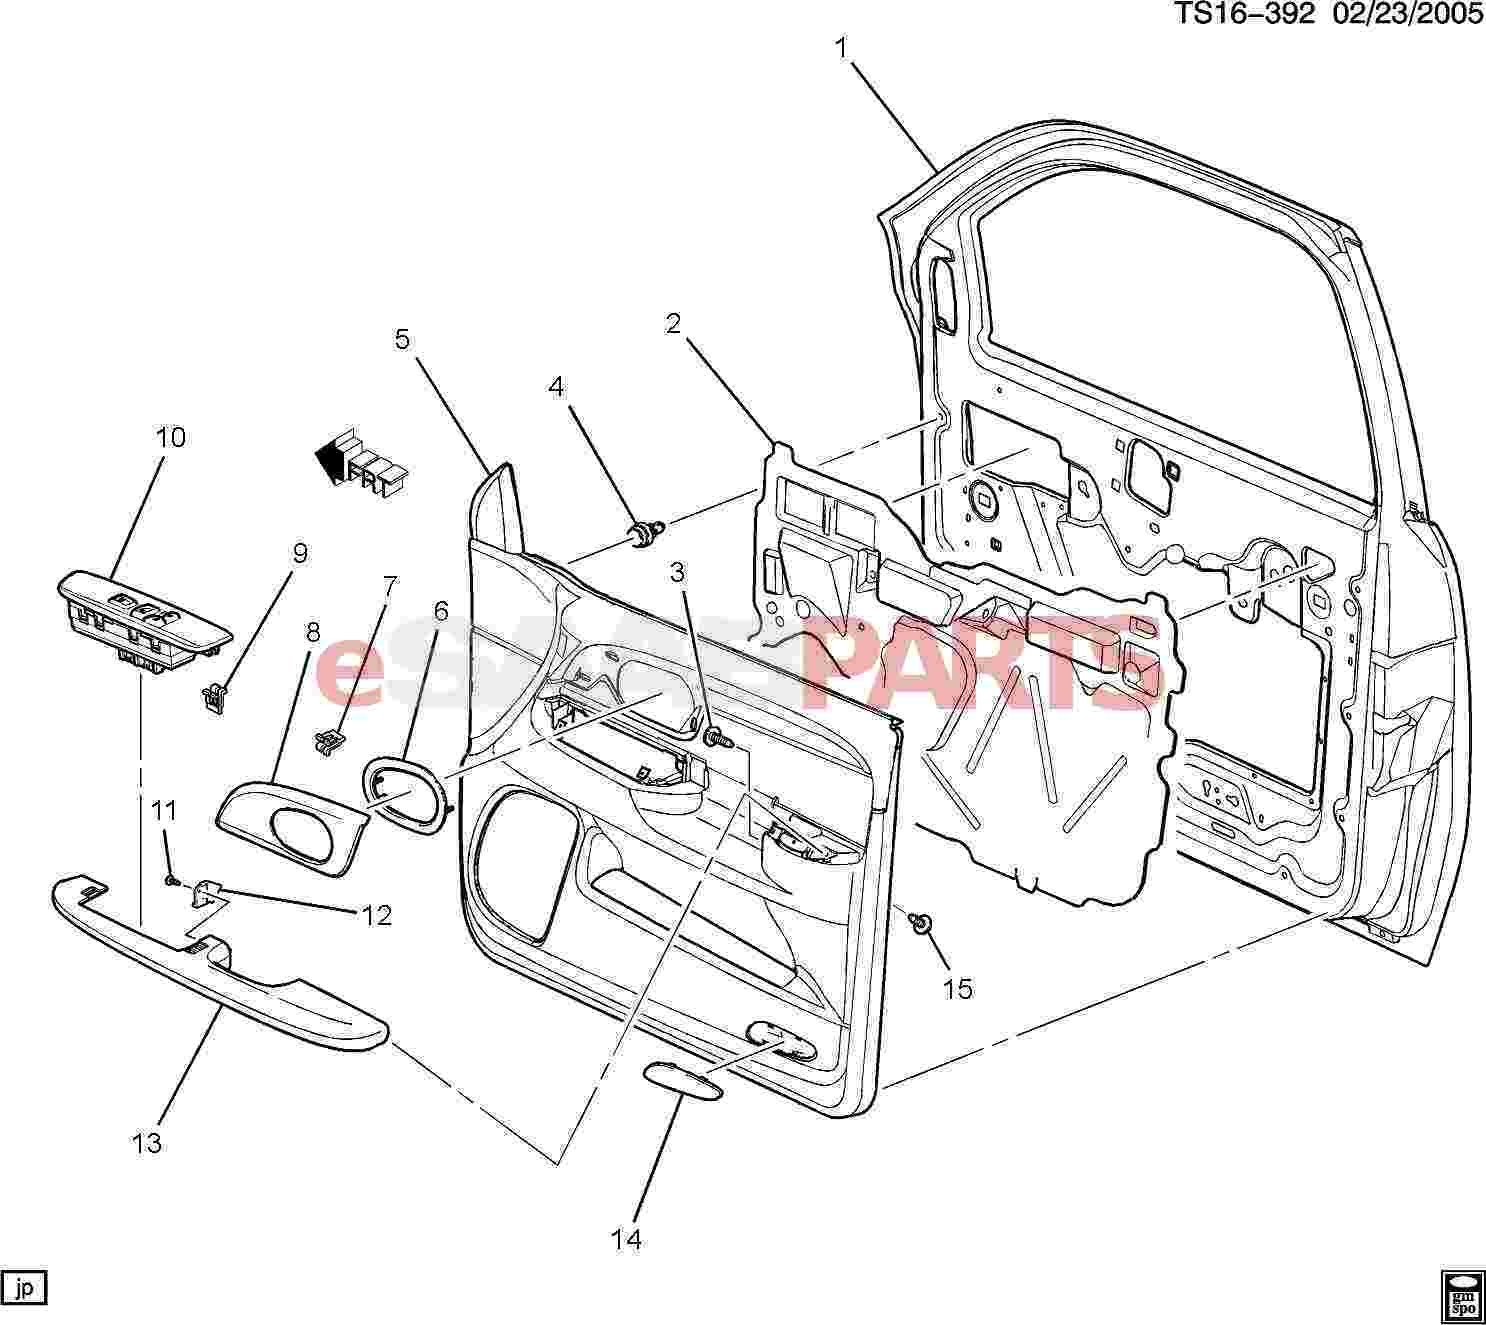 Exterior Car Parts Diagram Esaabparts Saab 9 7x Car Body Internal ...